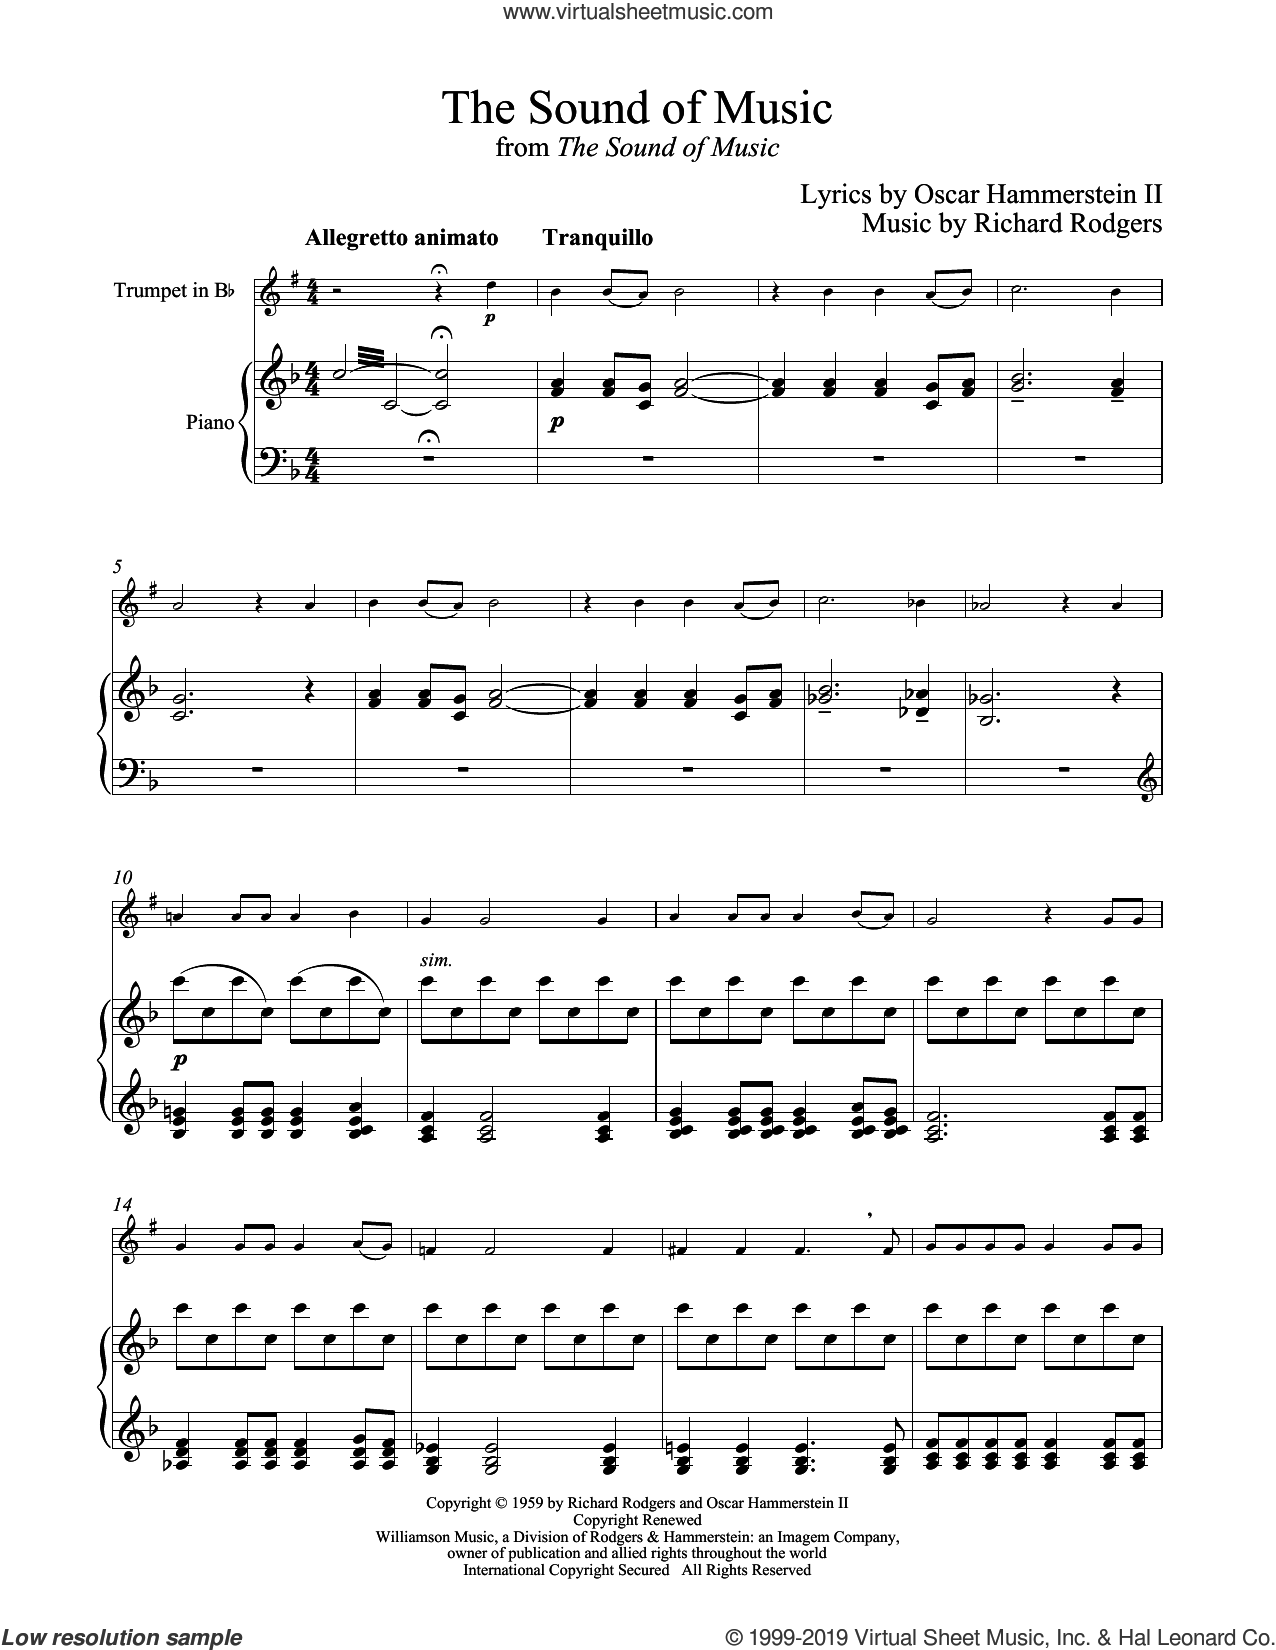 Hammerstein - The Sound Of Music sheet music for trumpet and